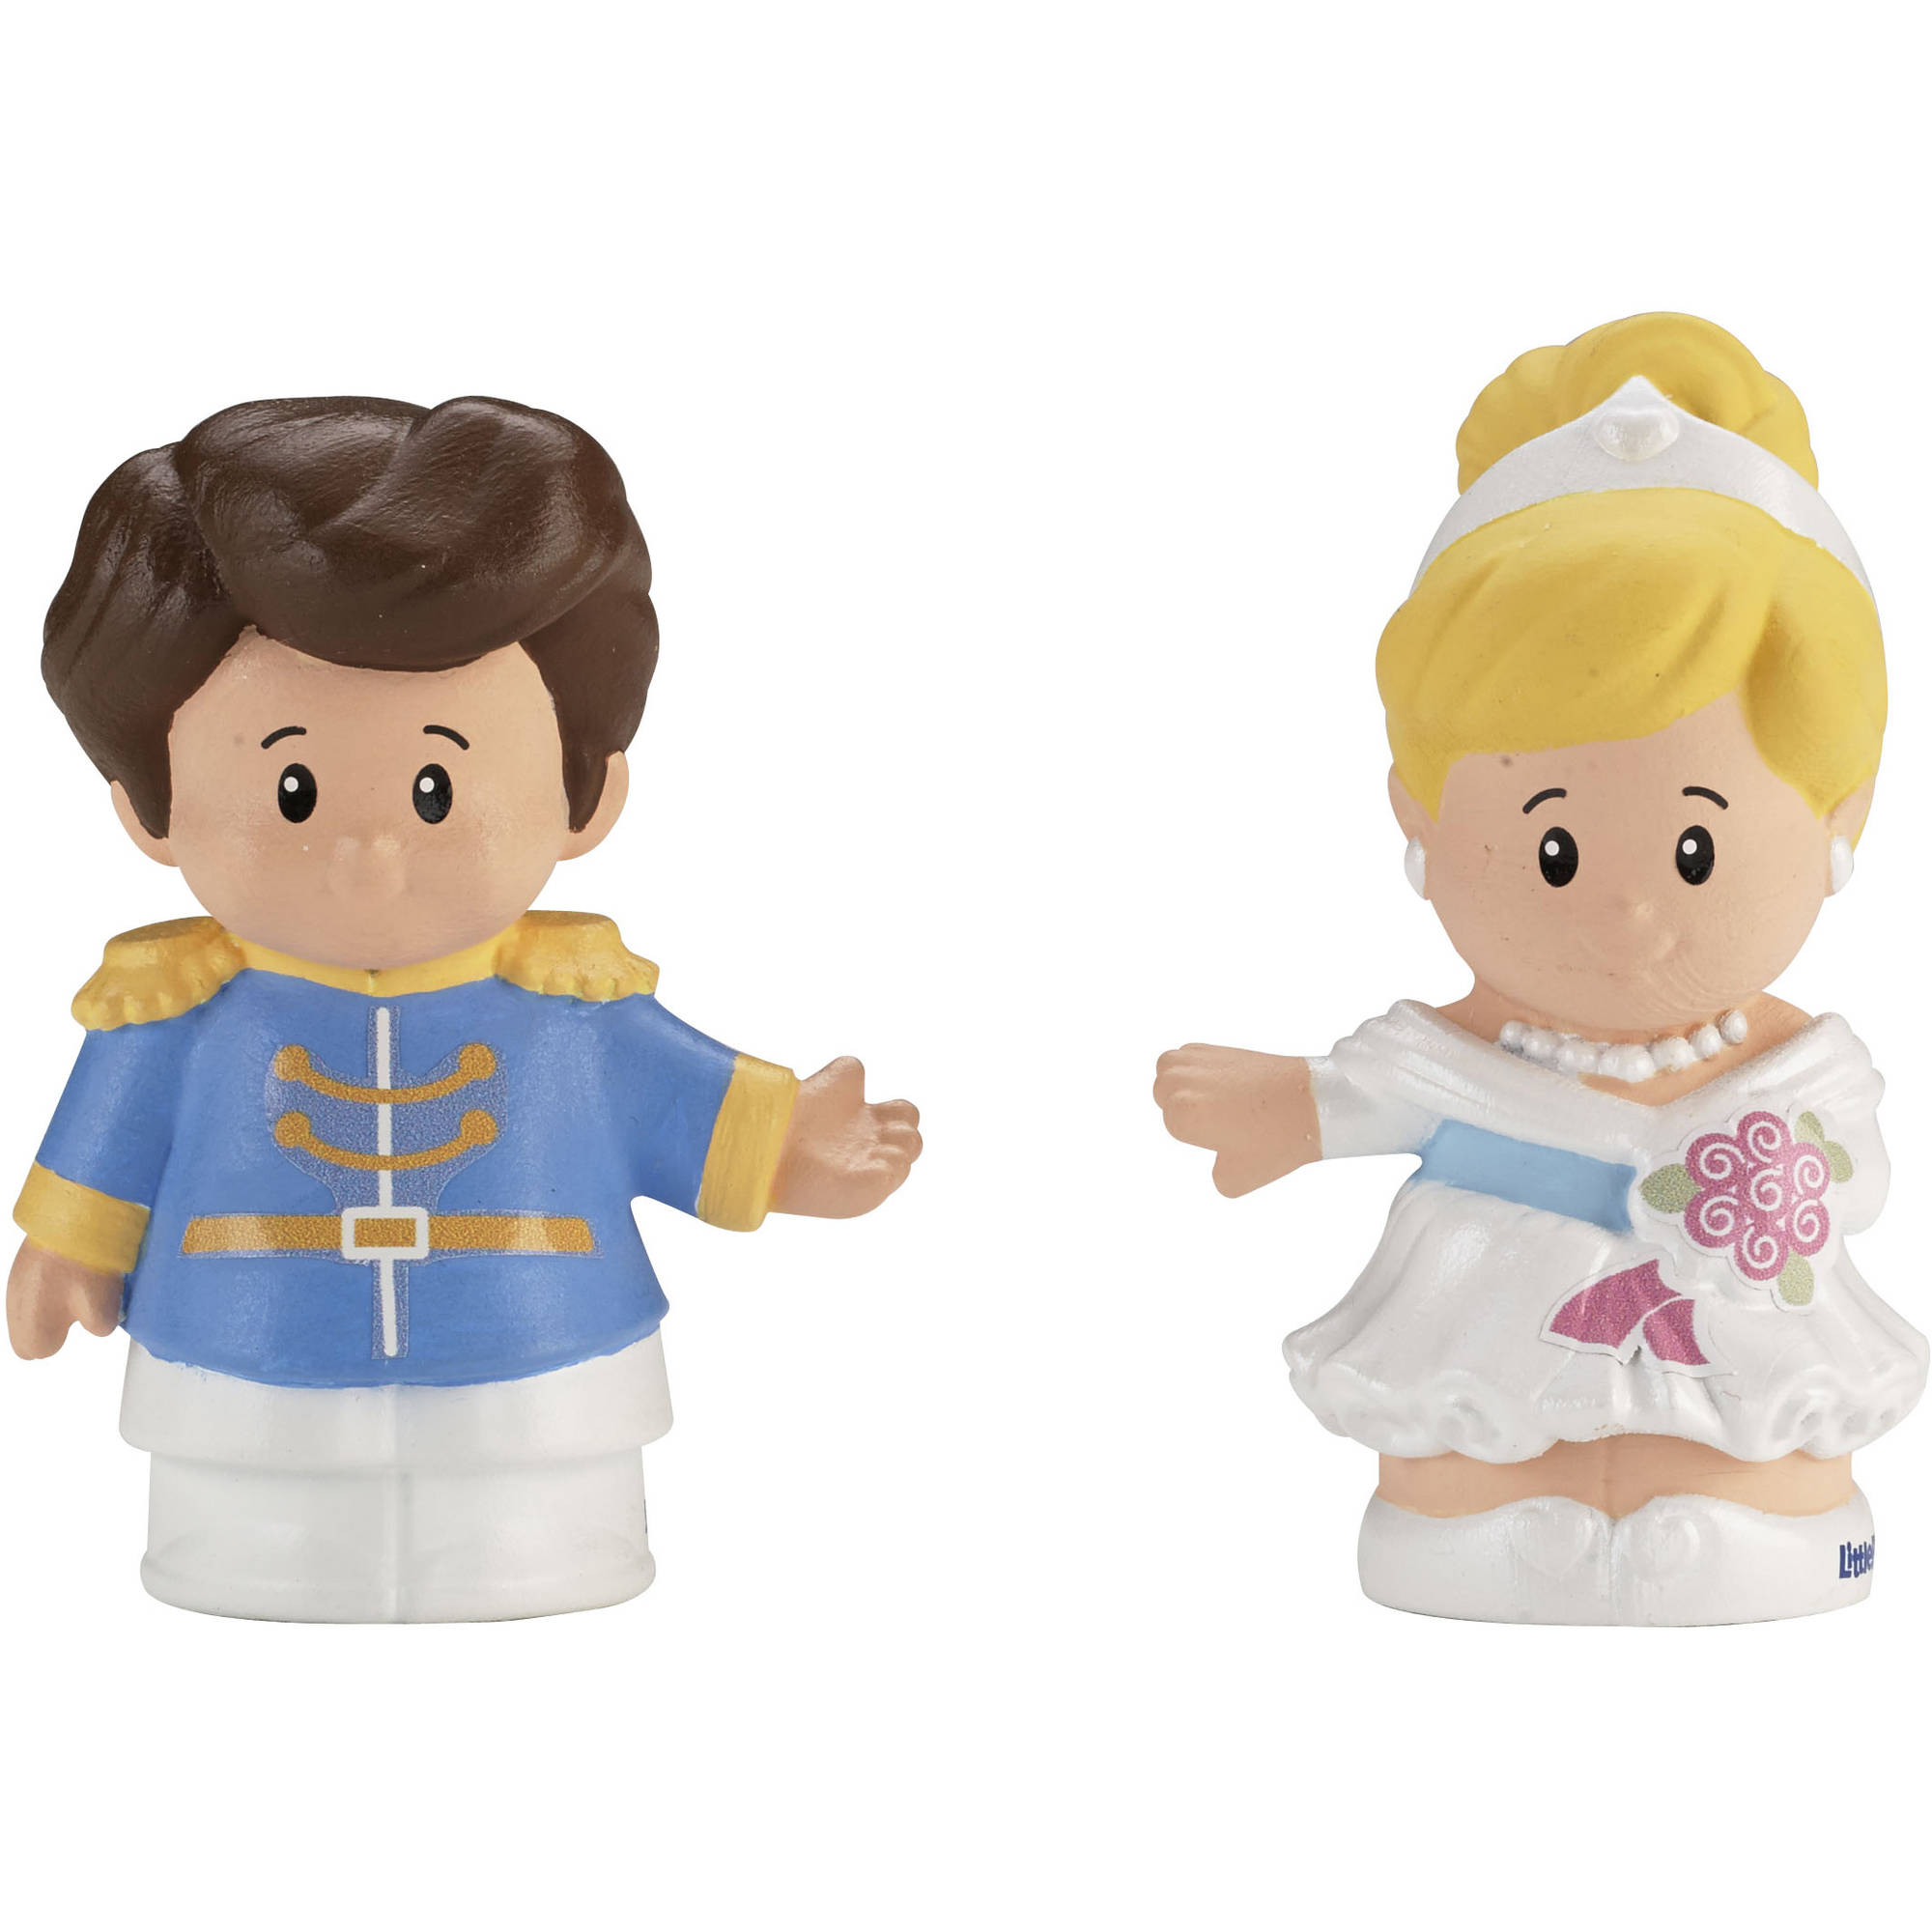 Fisher-Price Little People Disney Cinderella & Prince Charming 2-Pack Action Figures